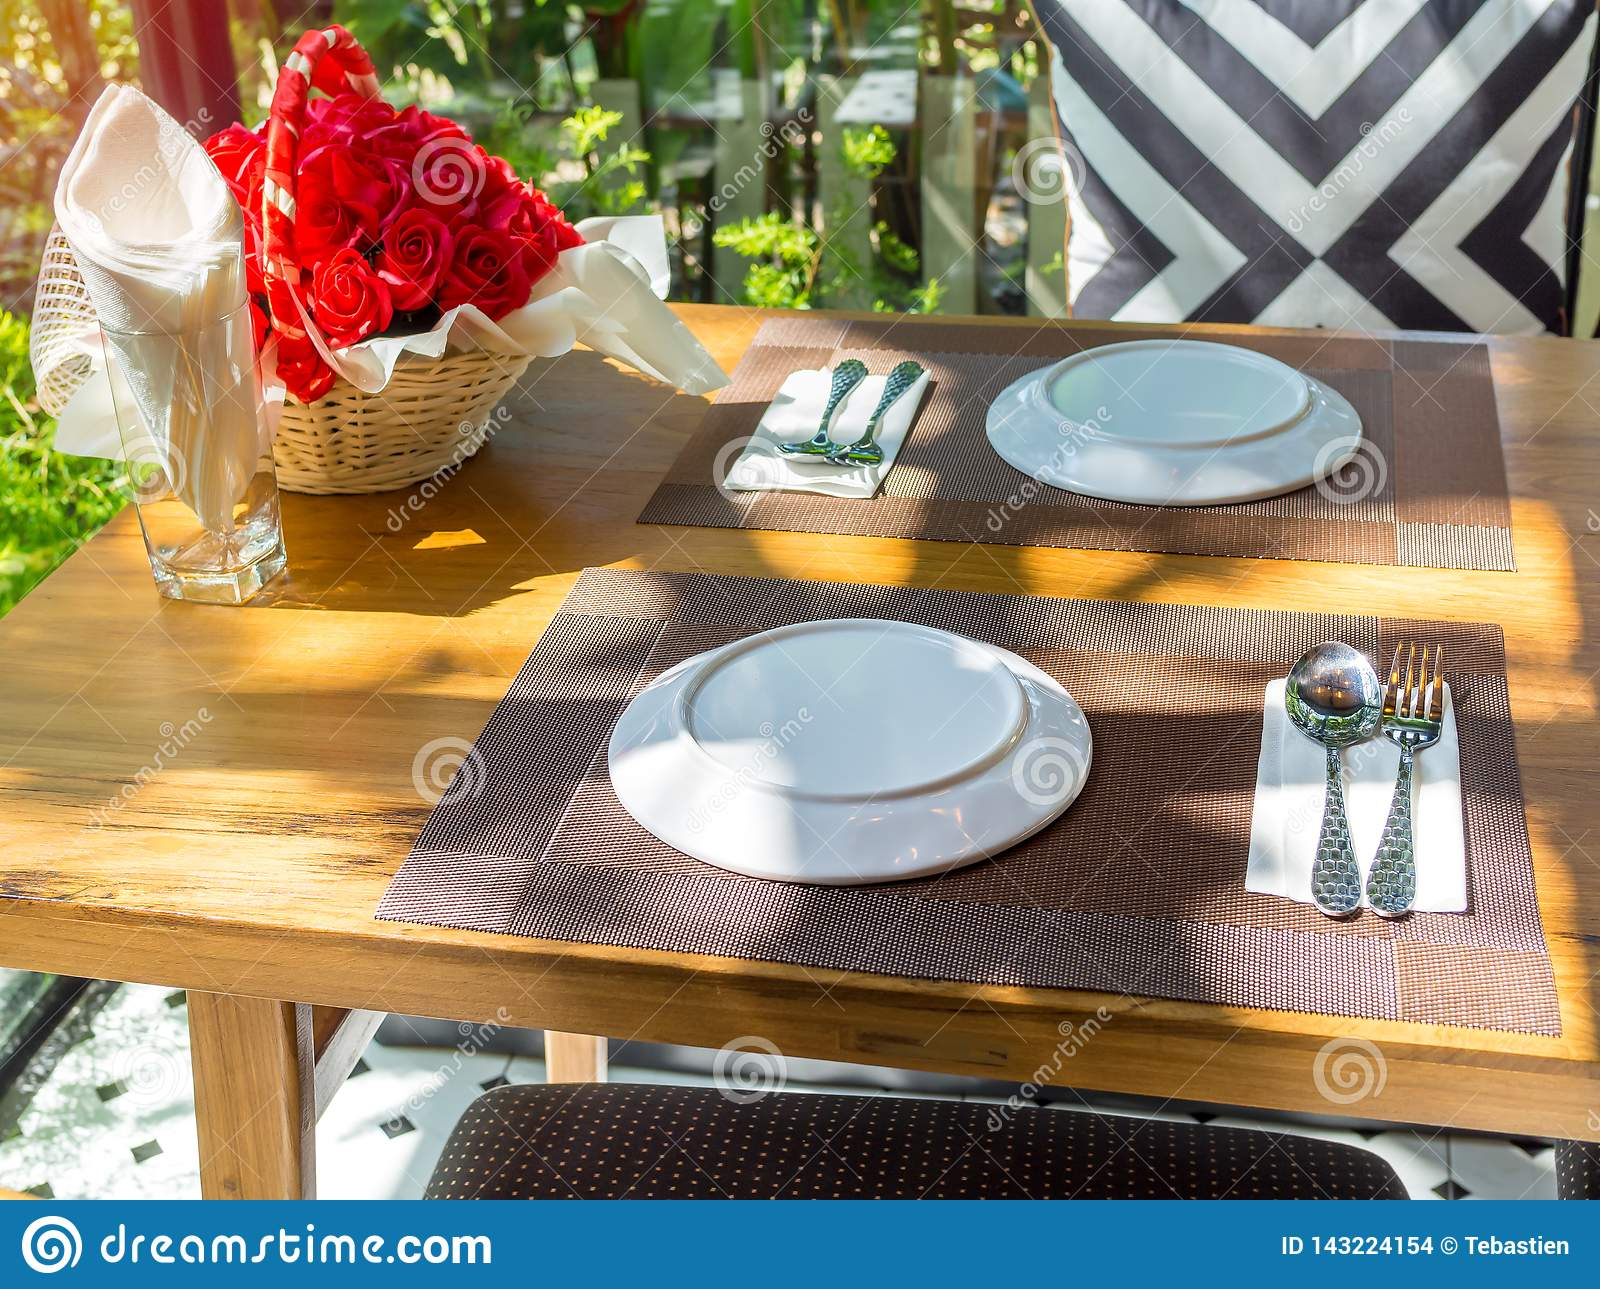 Dining Table Set In Restaurant With Romantic Sunshine Stock Photo Image Of Lover Lunch 143224154